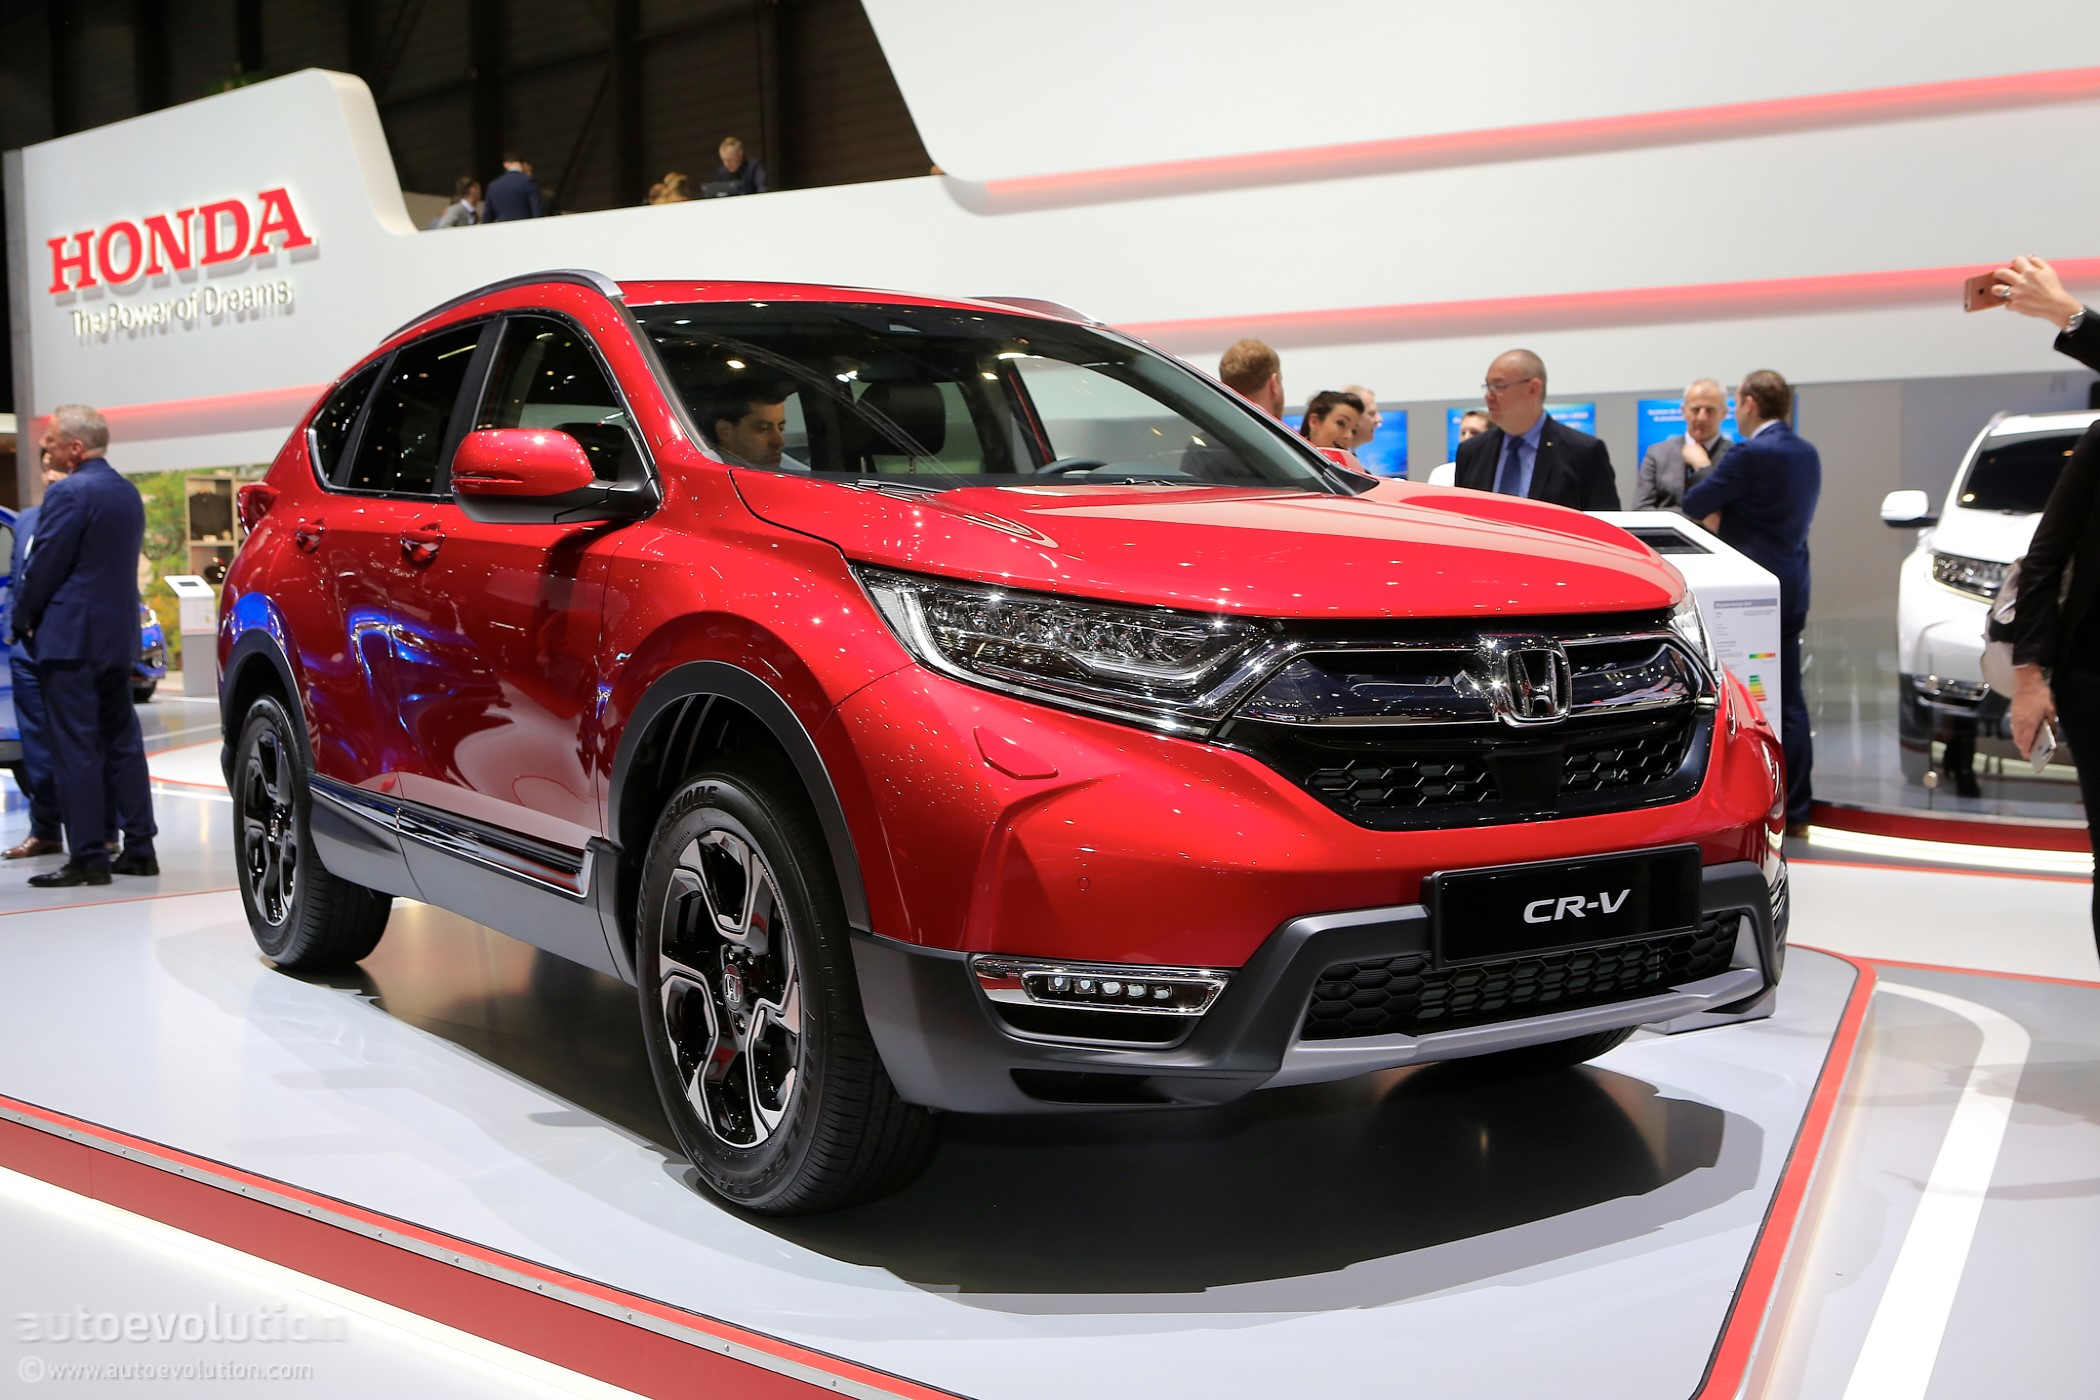 2018 honda cr v says adios to diesel in geneva embraces hybrid technology autoevolution. Black Bedroom Furniture Sets. Home Design Ideas